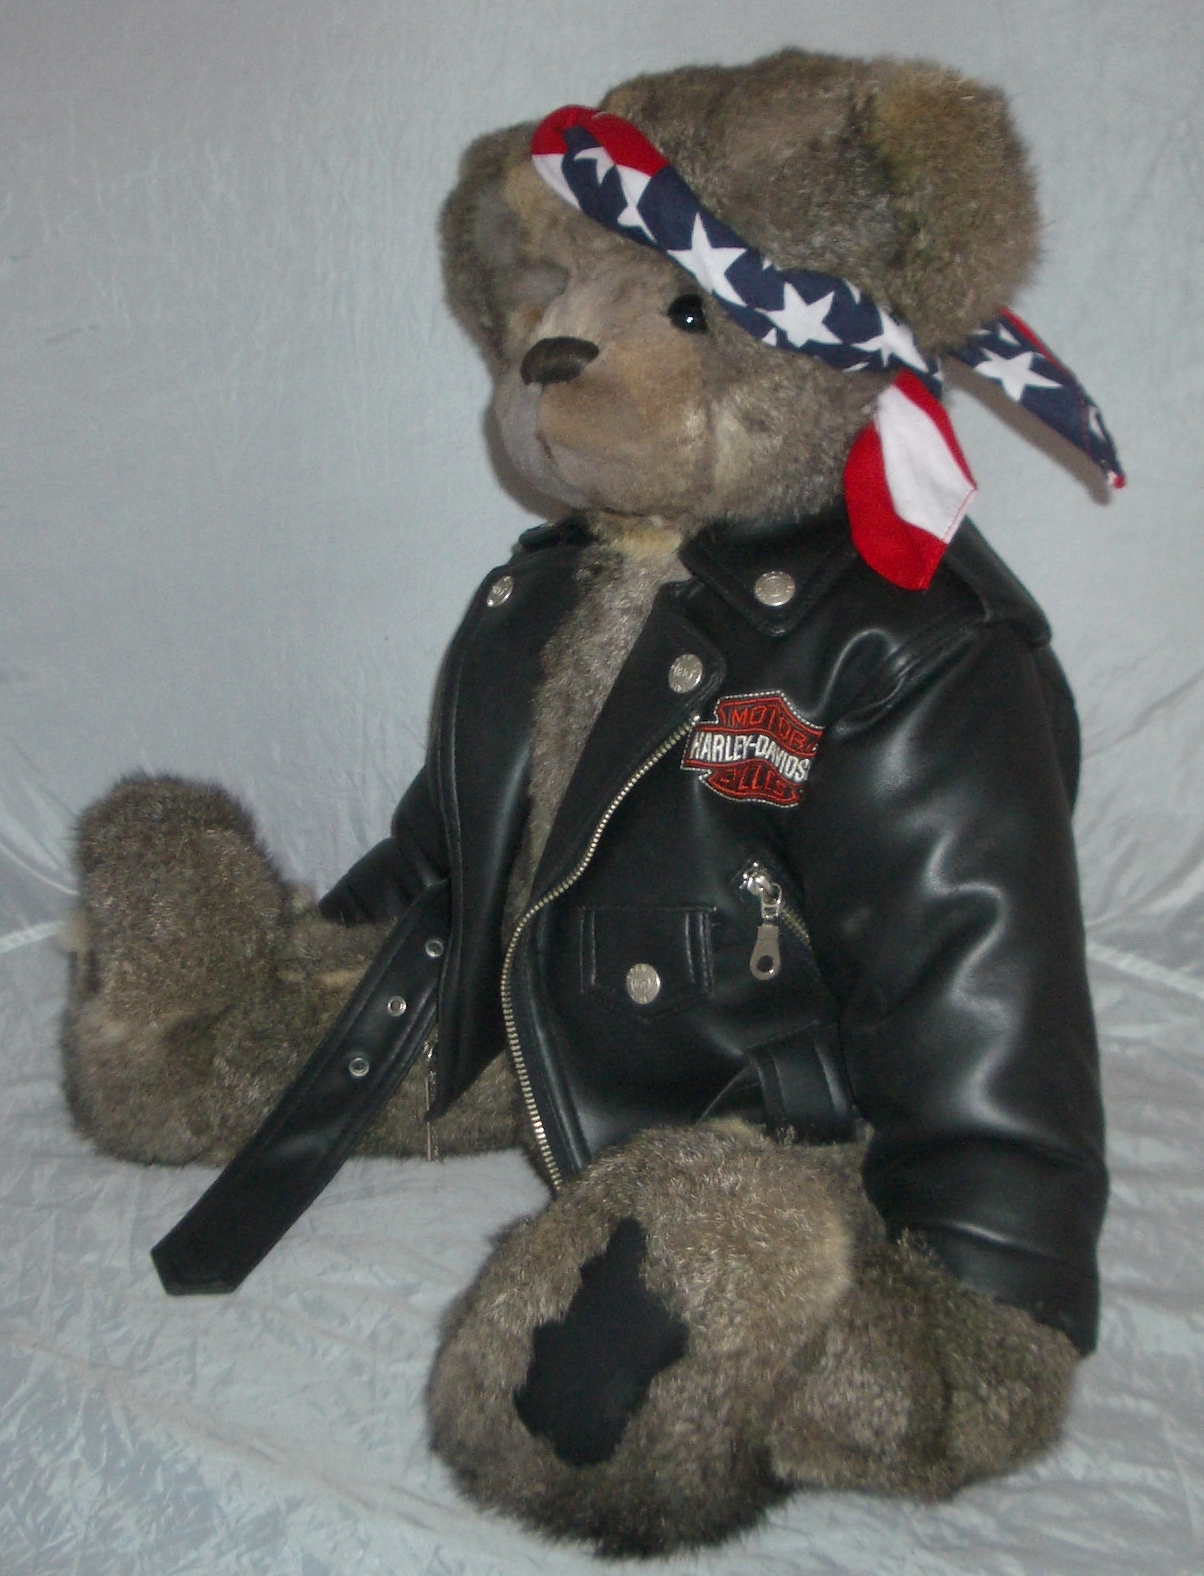 He is a VERY hearty 5-pound 25 rough-and-tumble bear who loves to ride. He wears his Harley-Davidson jacket with great pride